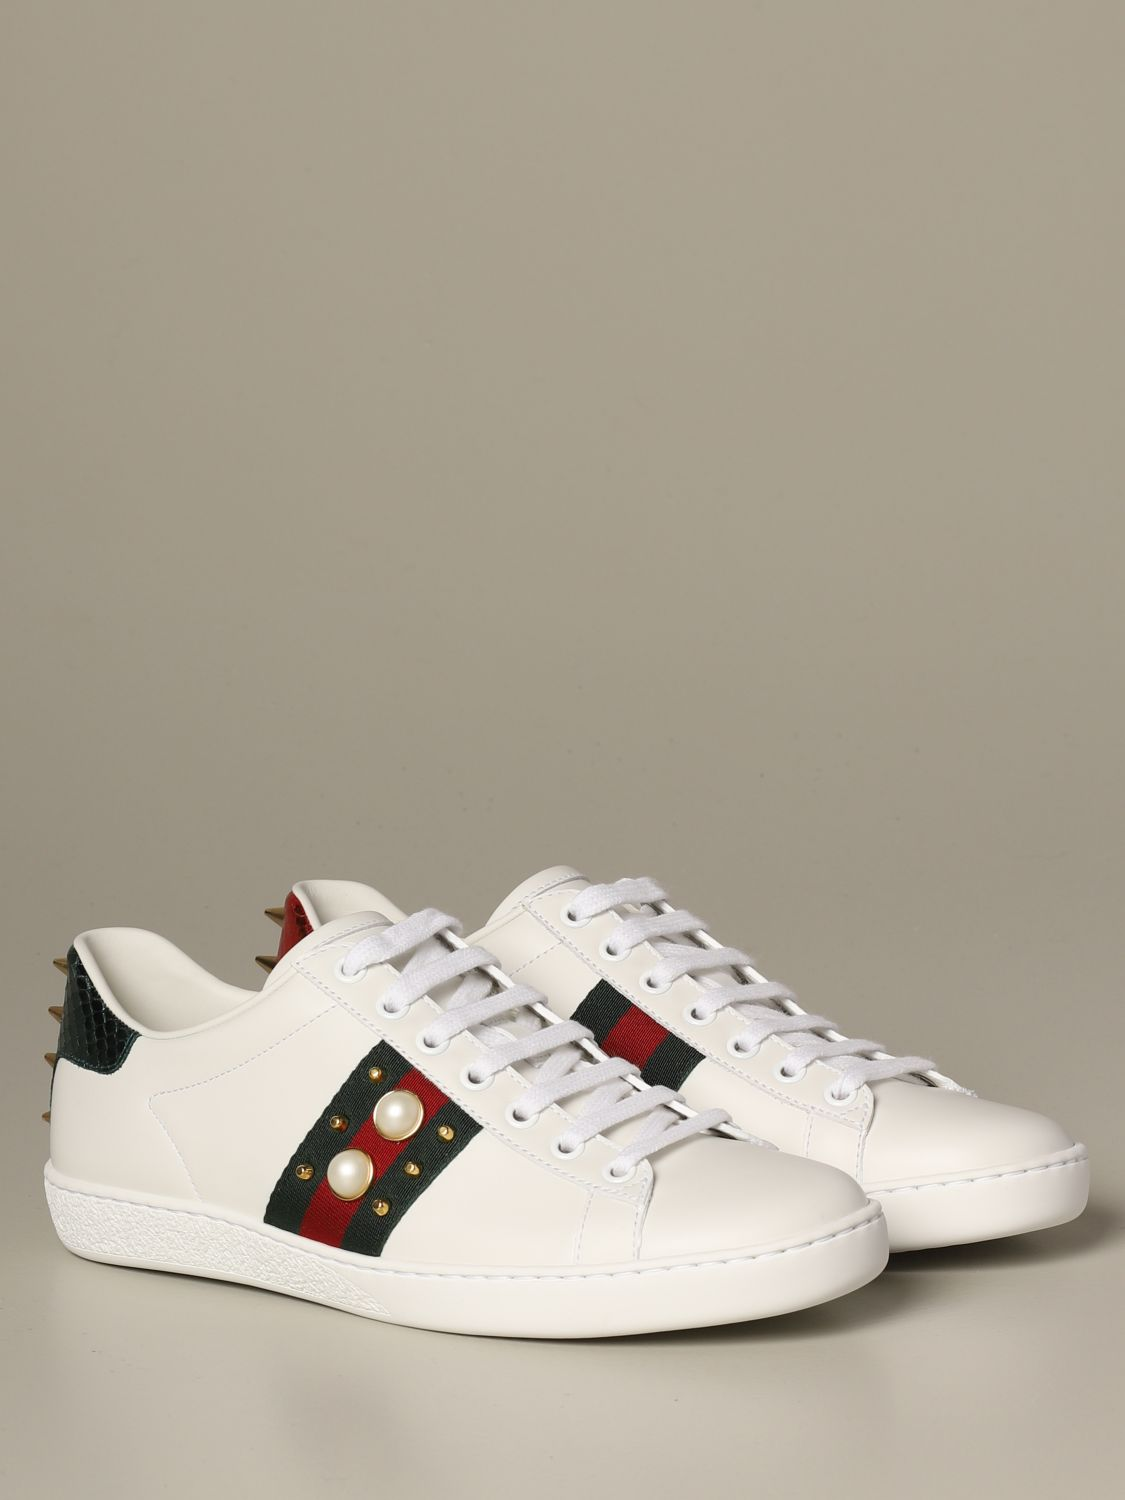 Gucci Ace leather sneakers with pearls